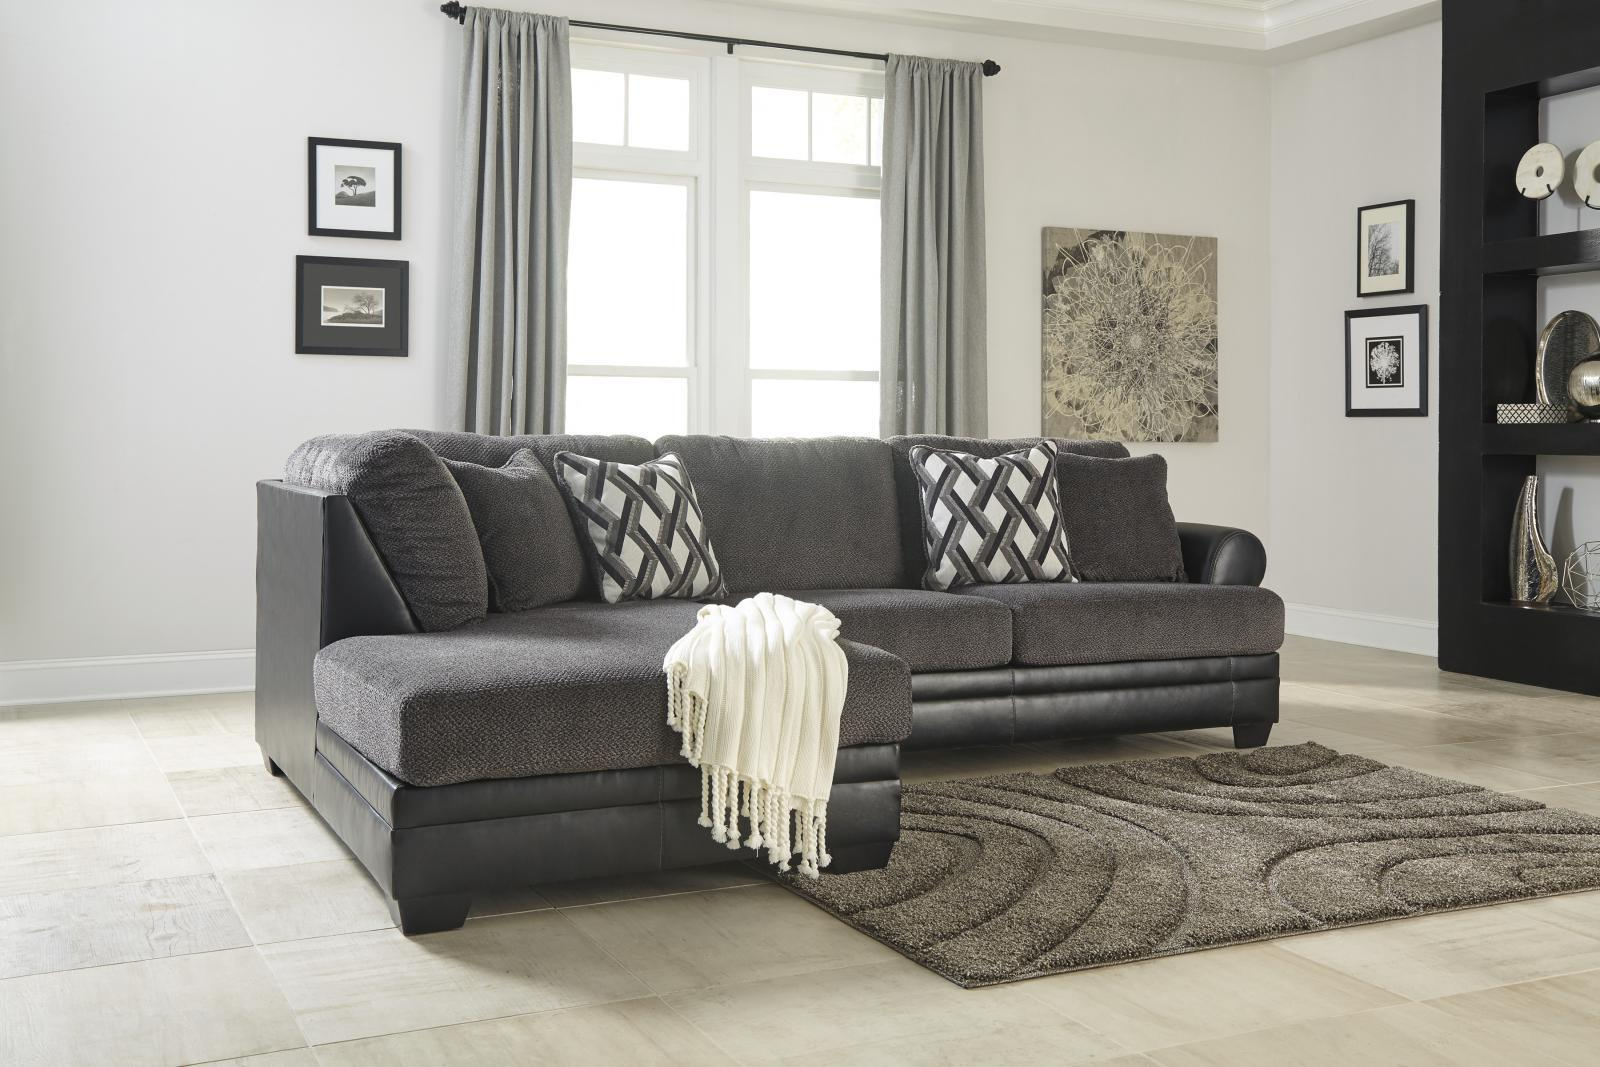 Ashley Kumasi Living Room Sectional 3pcs in Smoke Contemporary Left Facing